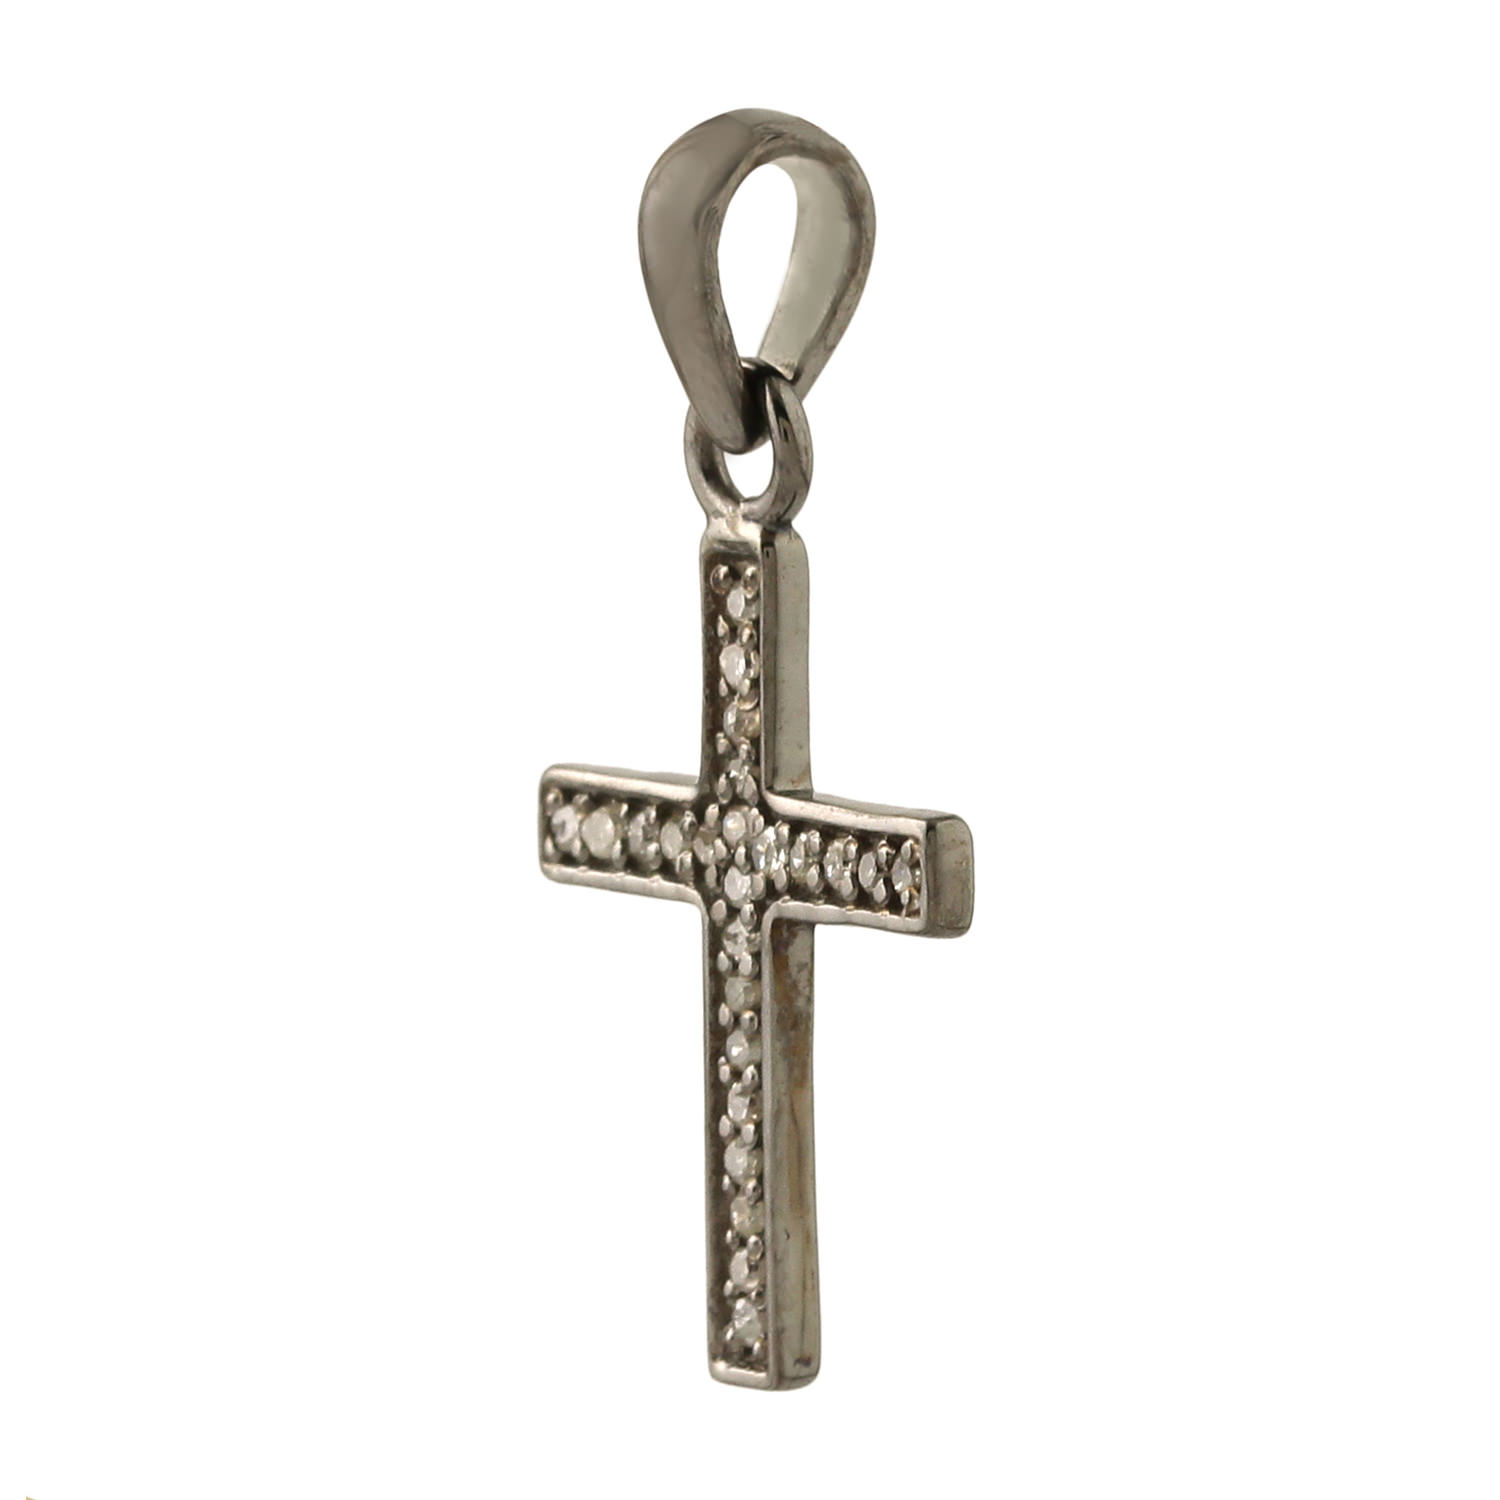 0-22ct-Pave-Diamond-Cross-Design-Charm-Pendant-925-Sterling-Silver-Jewelry-GIFT thumbnail 2